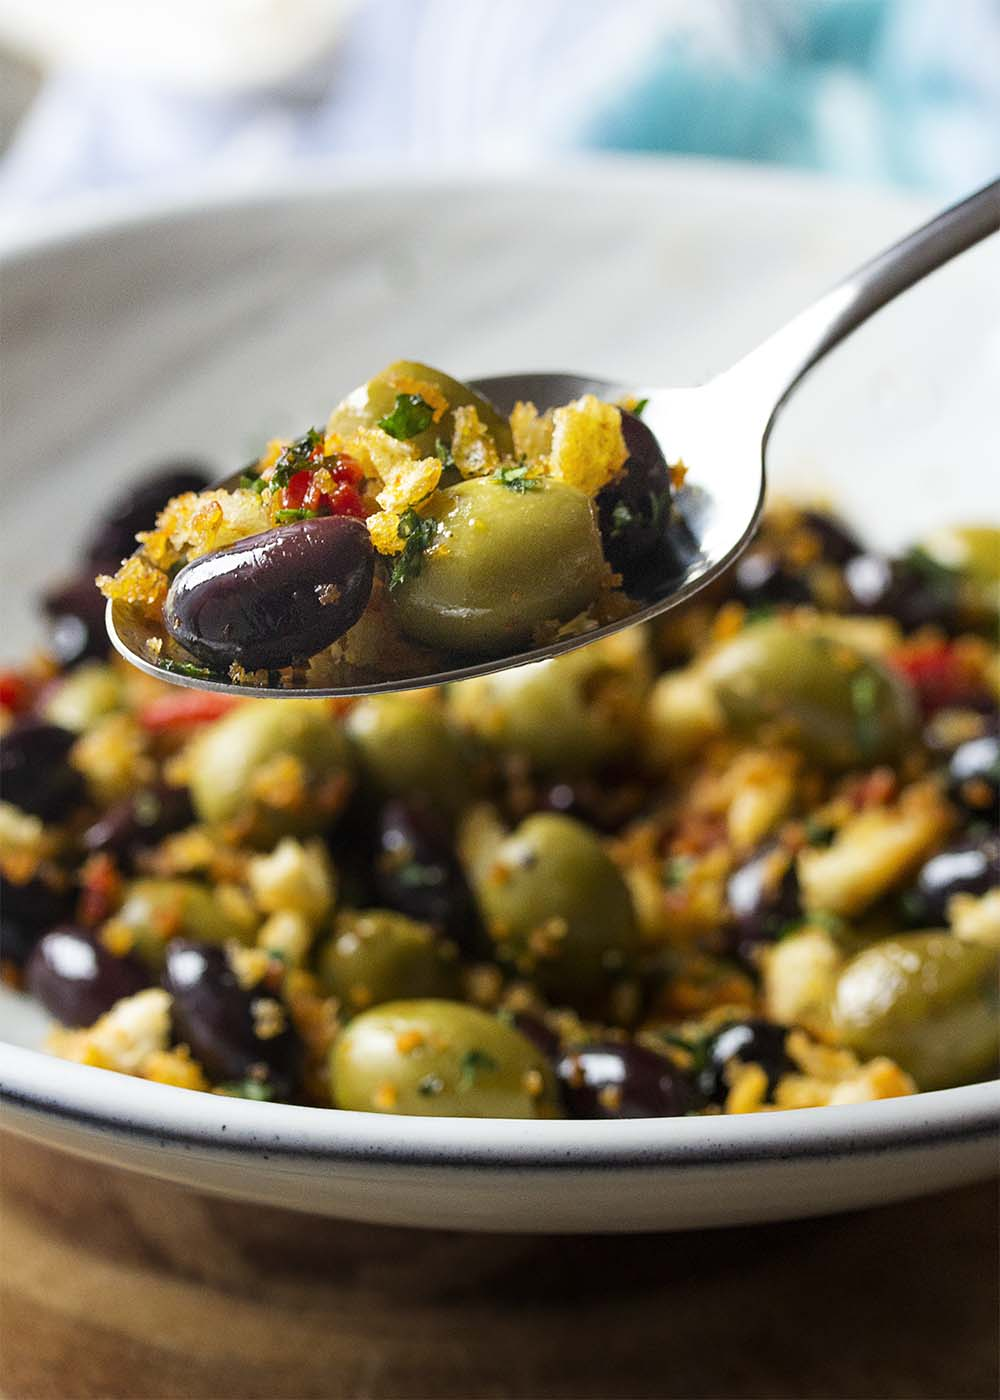 A serving spoon holding up a scoop of olives with spiced bread crumbs.